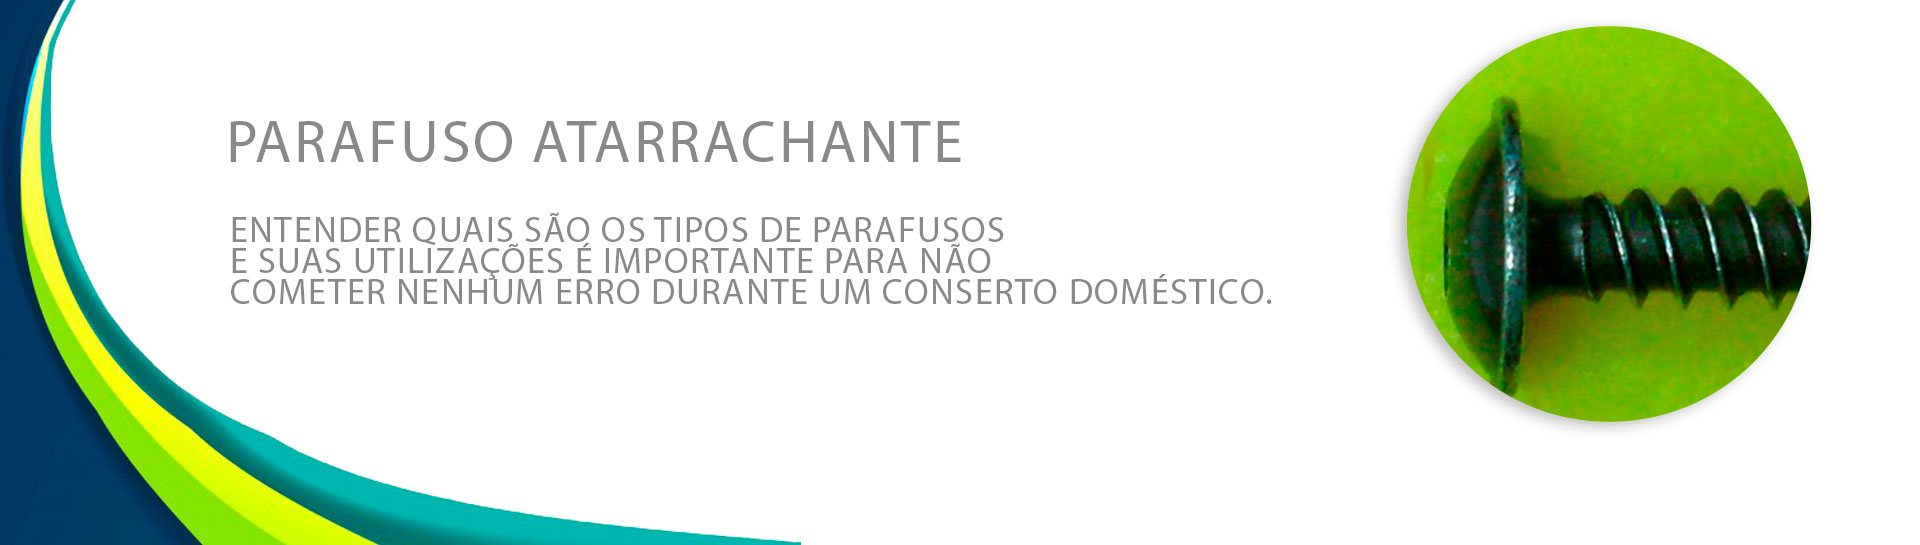 parafuso atarrachante